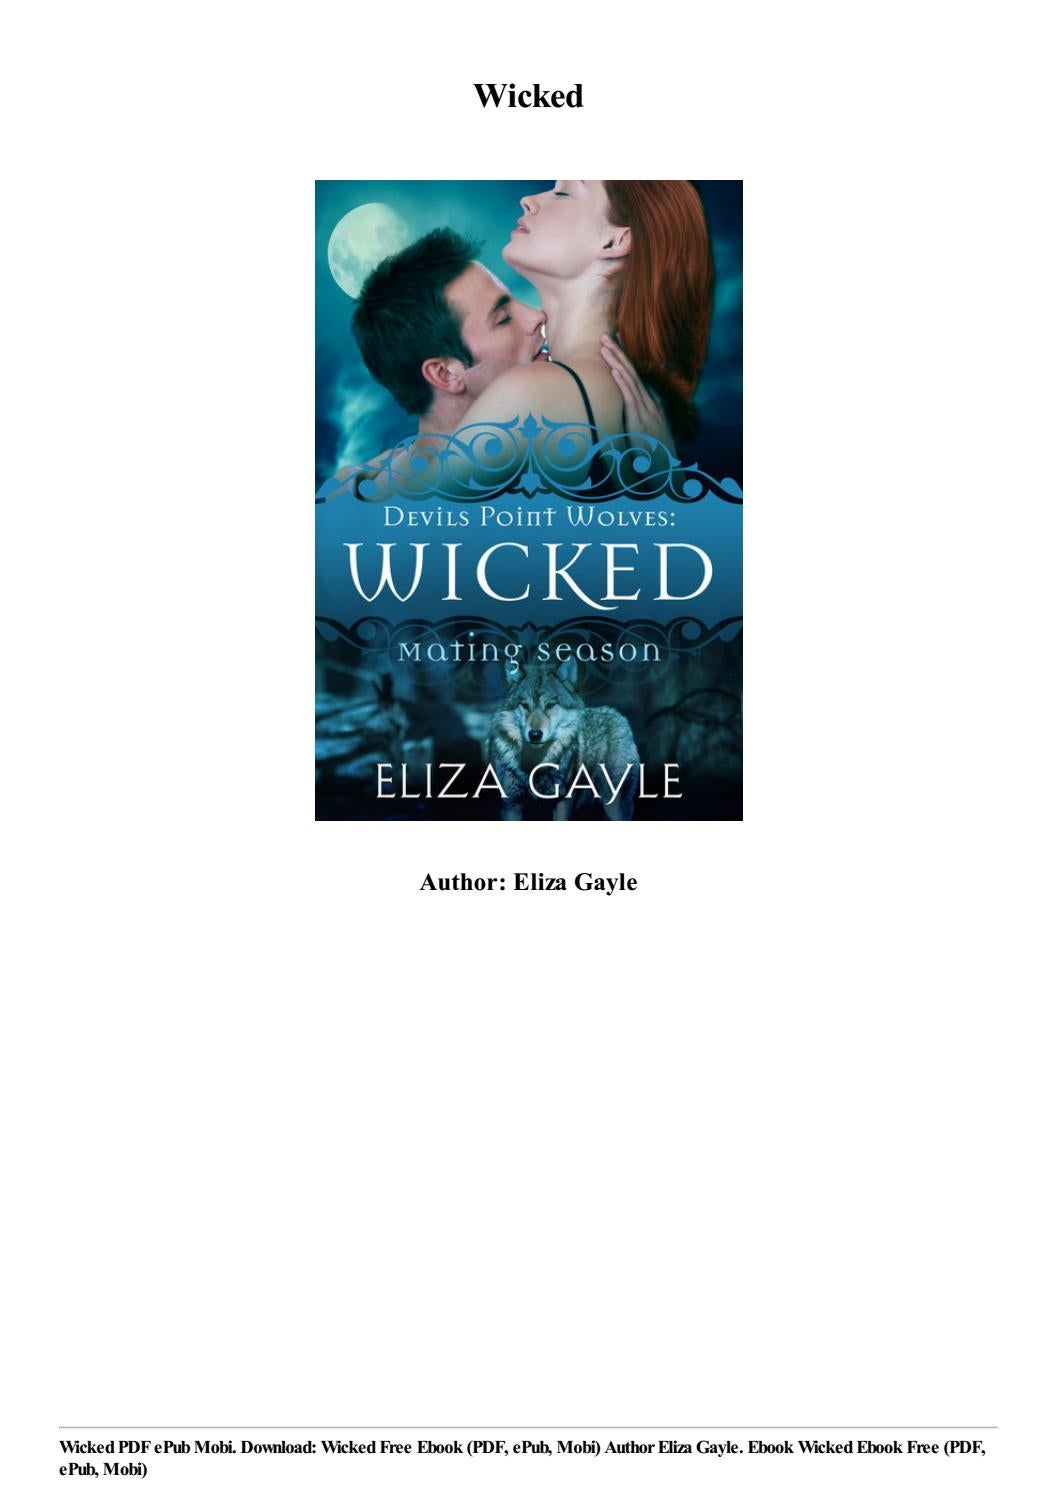 Her wicked wolf pdf free download free